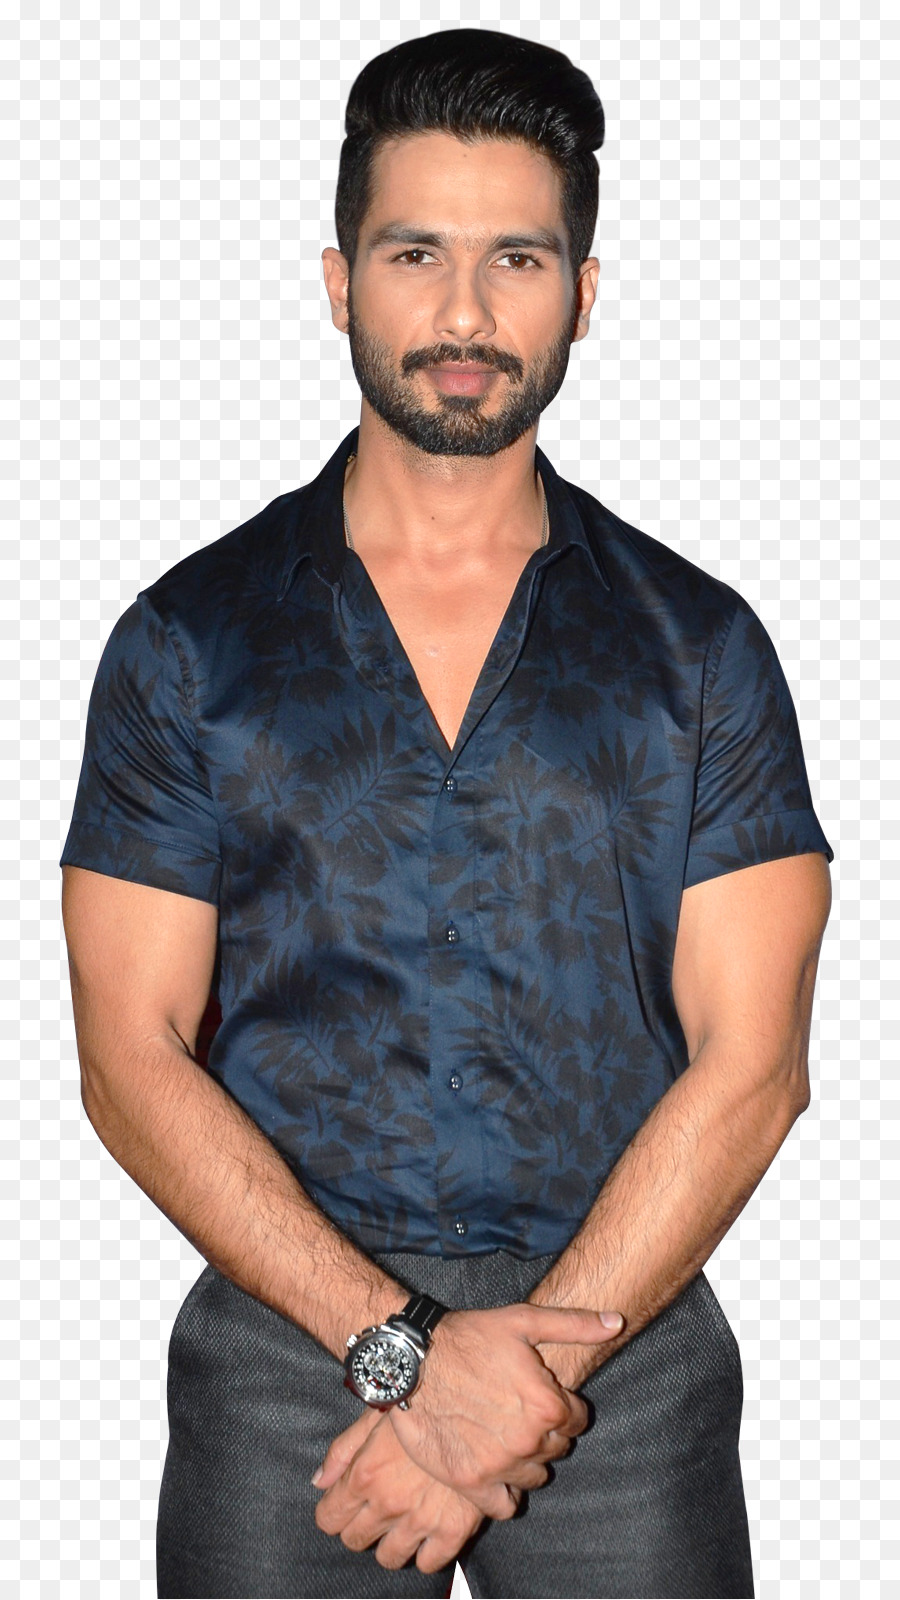 shahid kapoor 60th filmfare awards - shahid kapoor png download